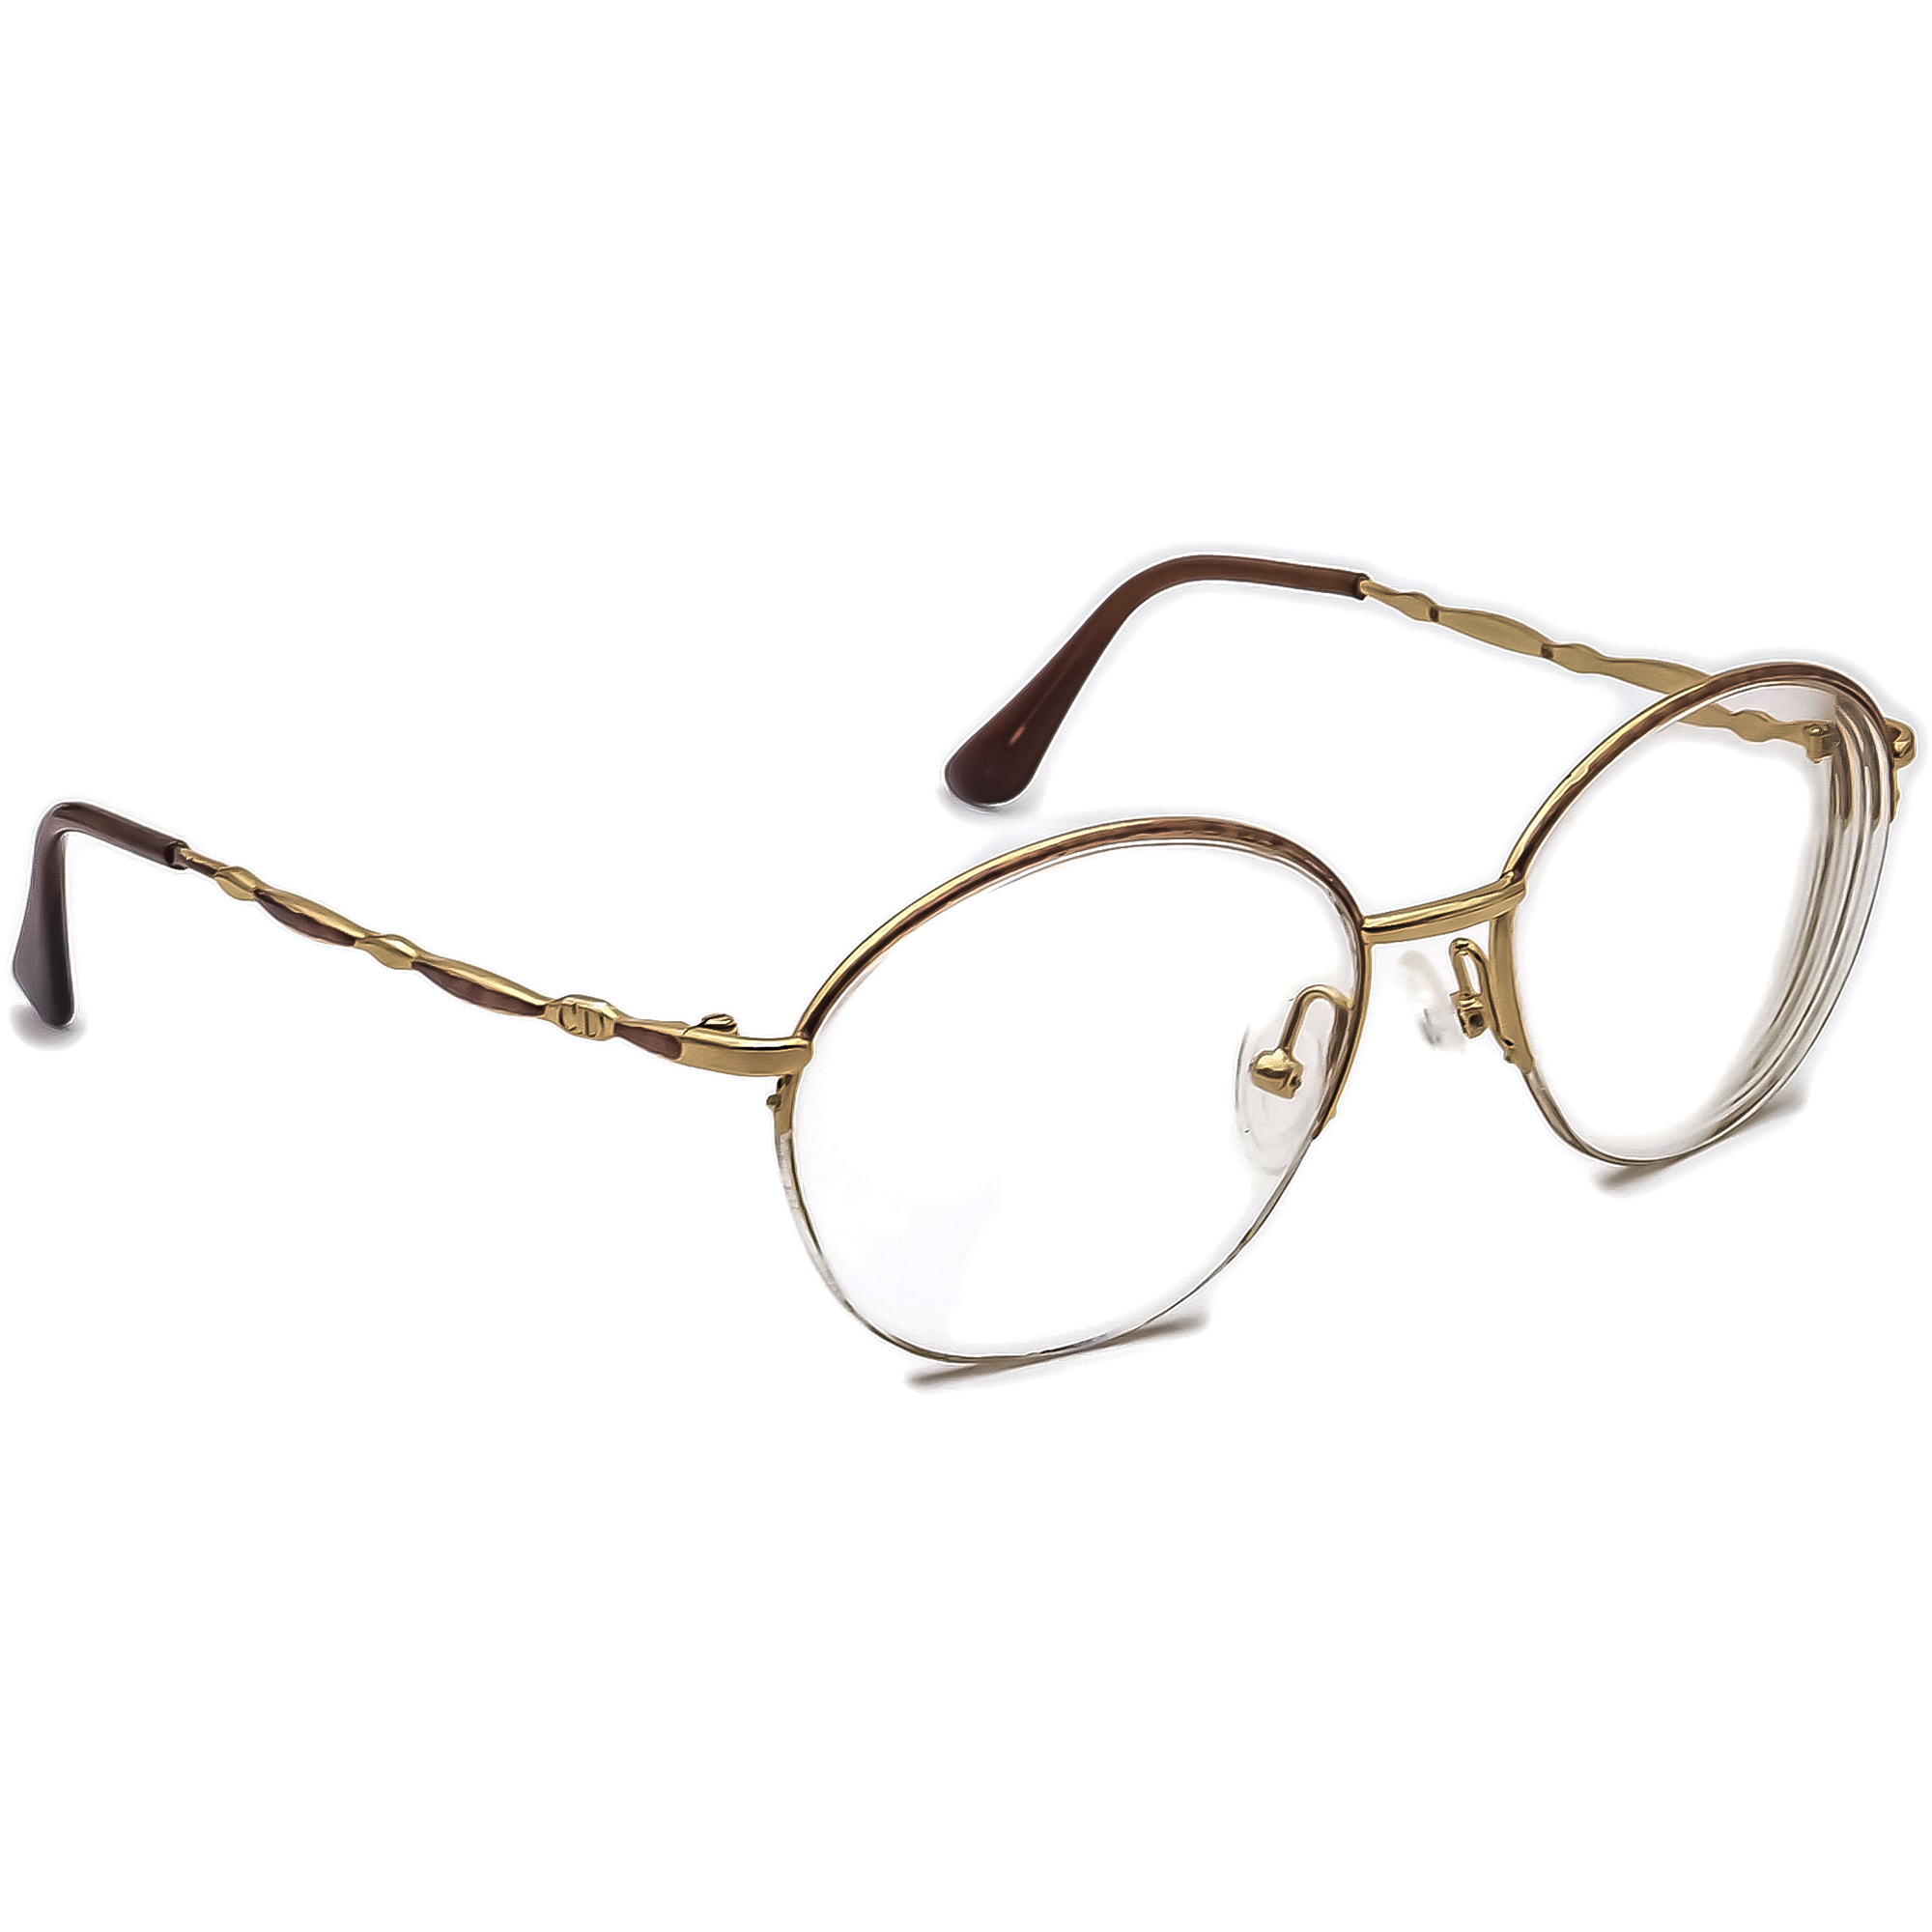 Christian Dior 2894 48 Eyeglasses